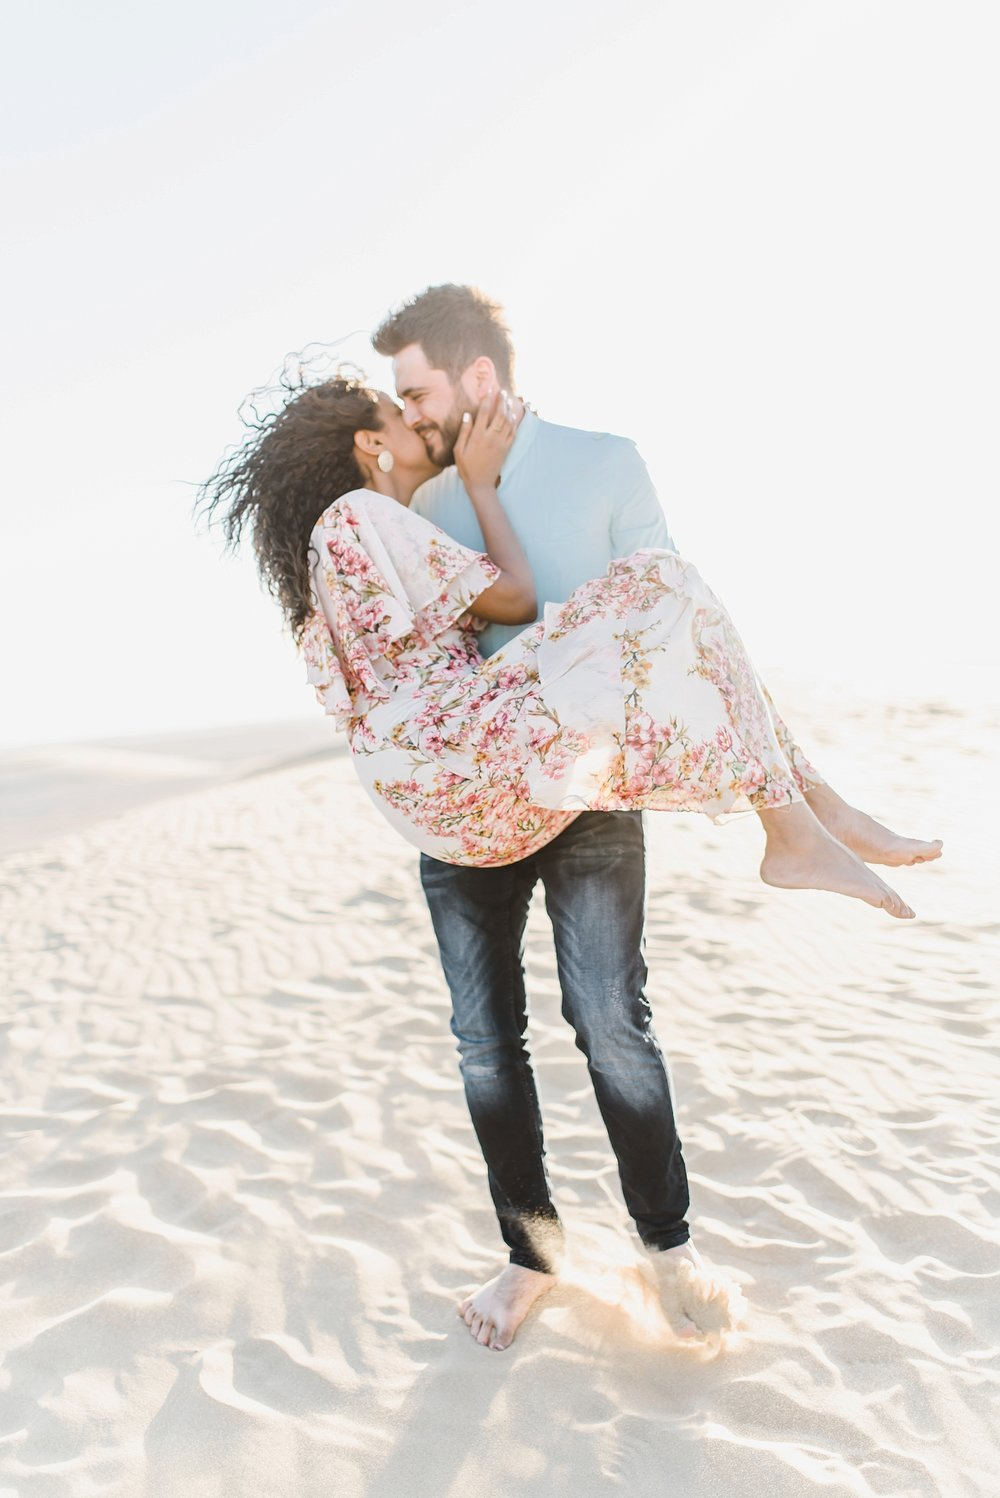 Singing Sand Dunes Desert Love Shoot | Ali and Batoul Photography_0039.jpg